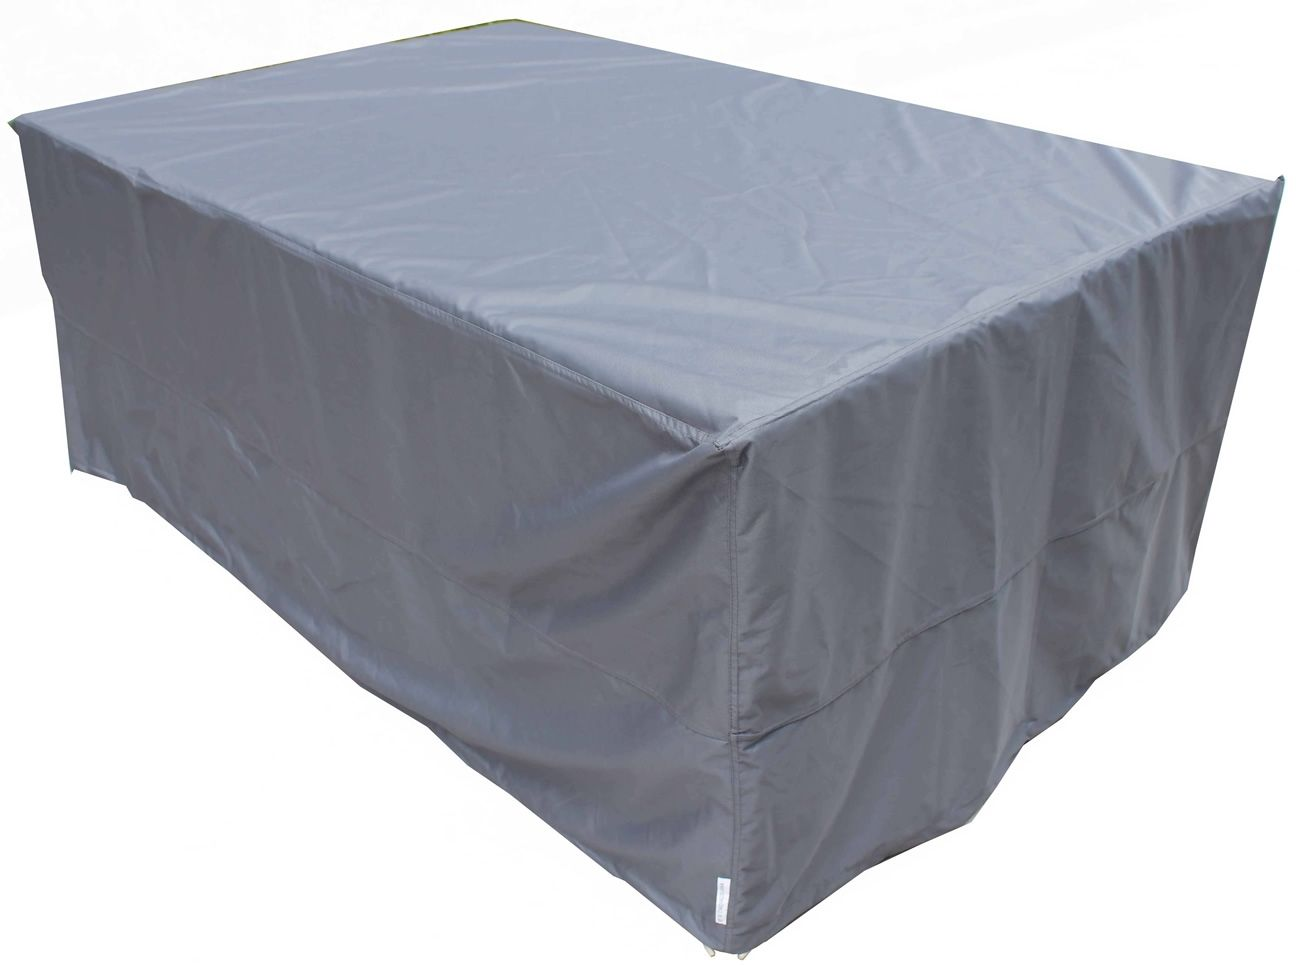 4 Seater Garden Furniture Cover